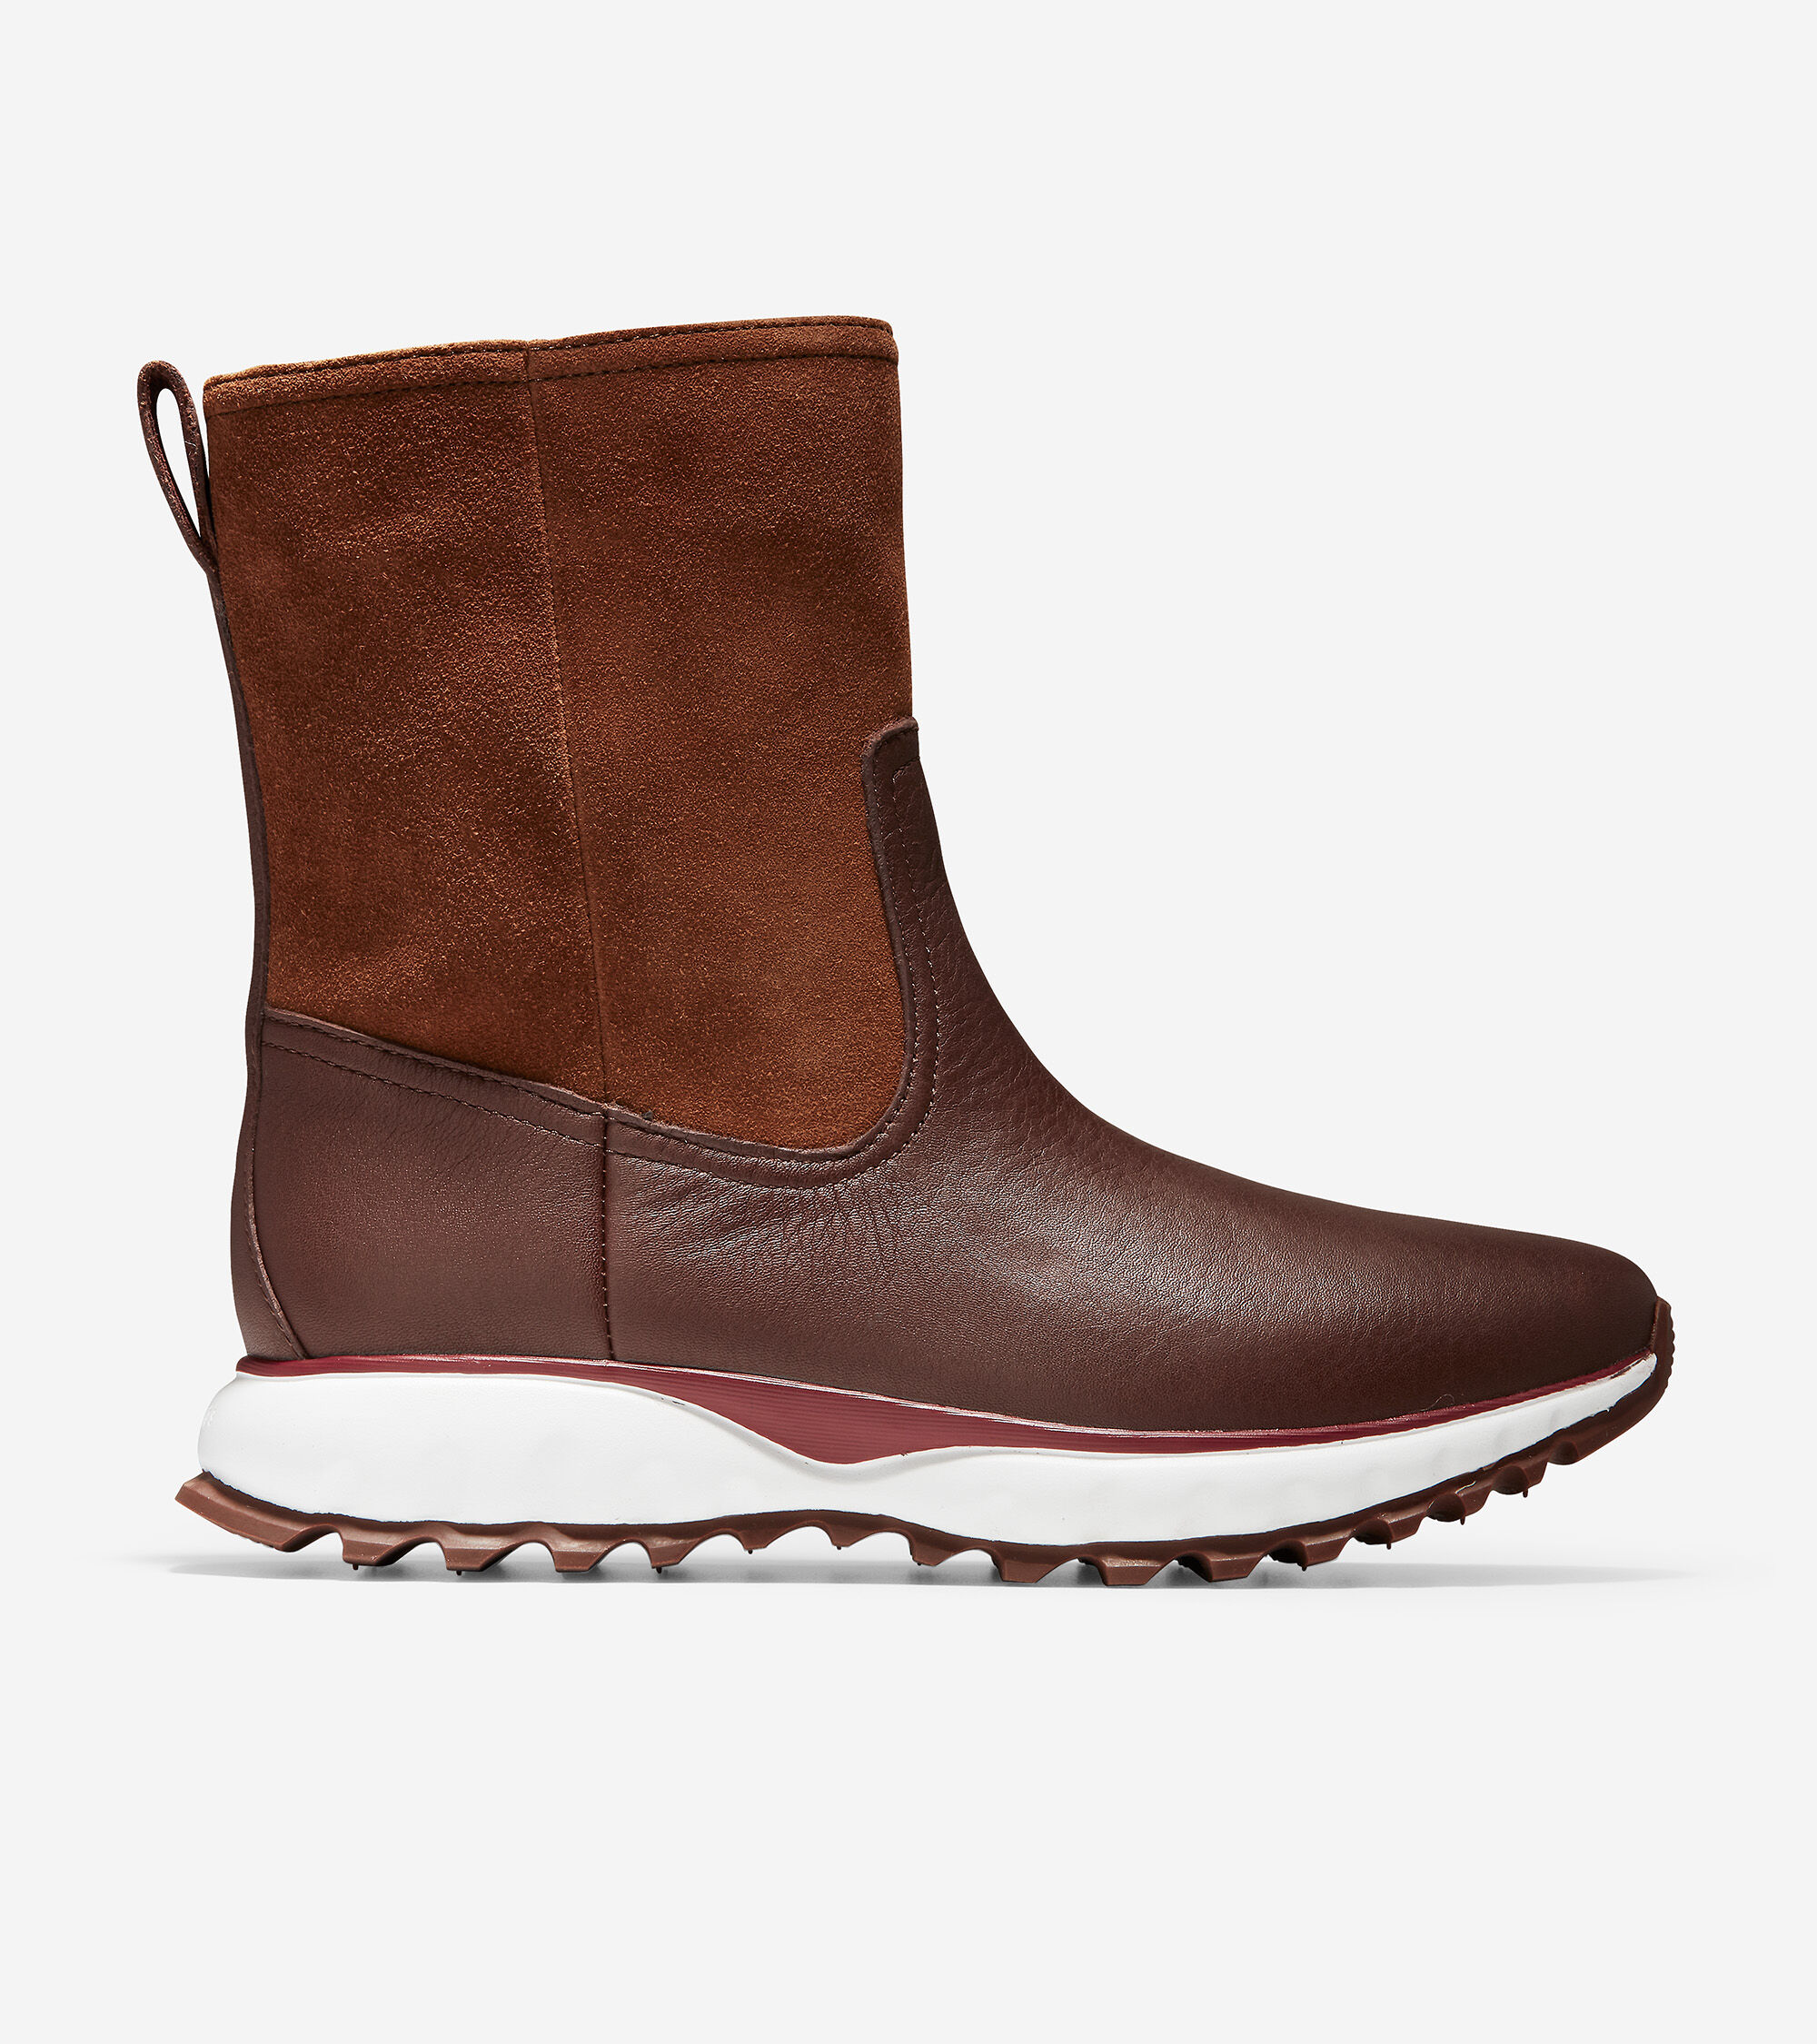 XC Pull-On Boot in Harvest Brown Suede